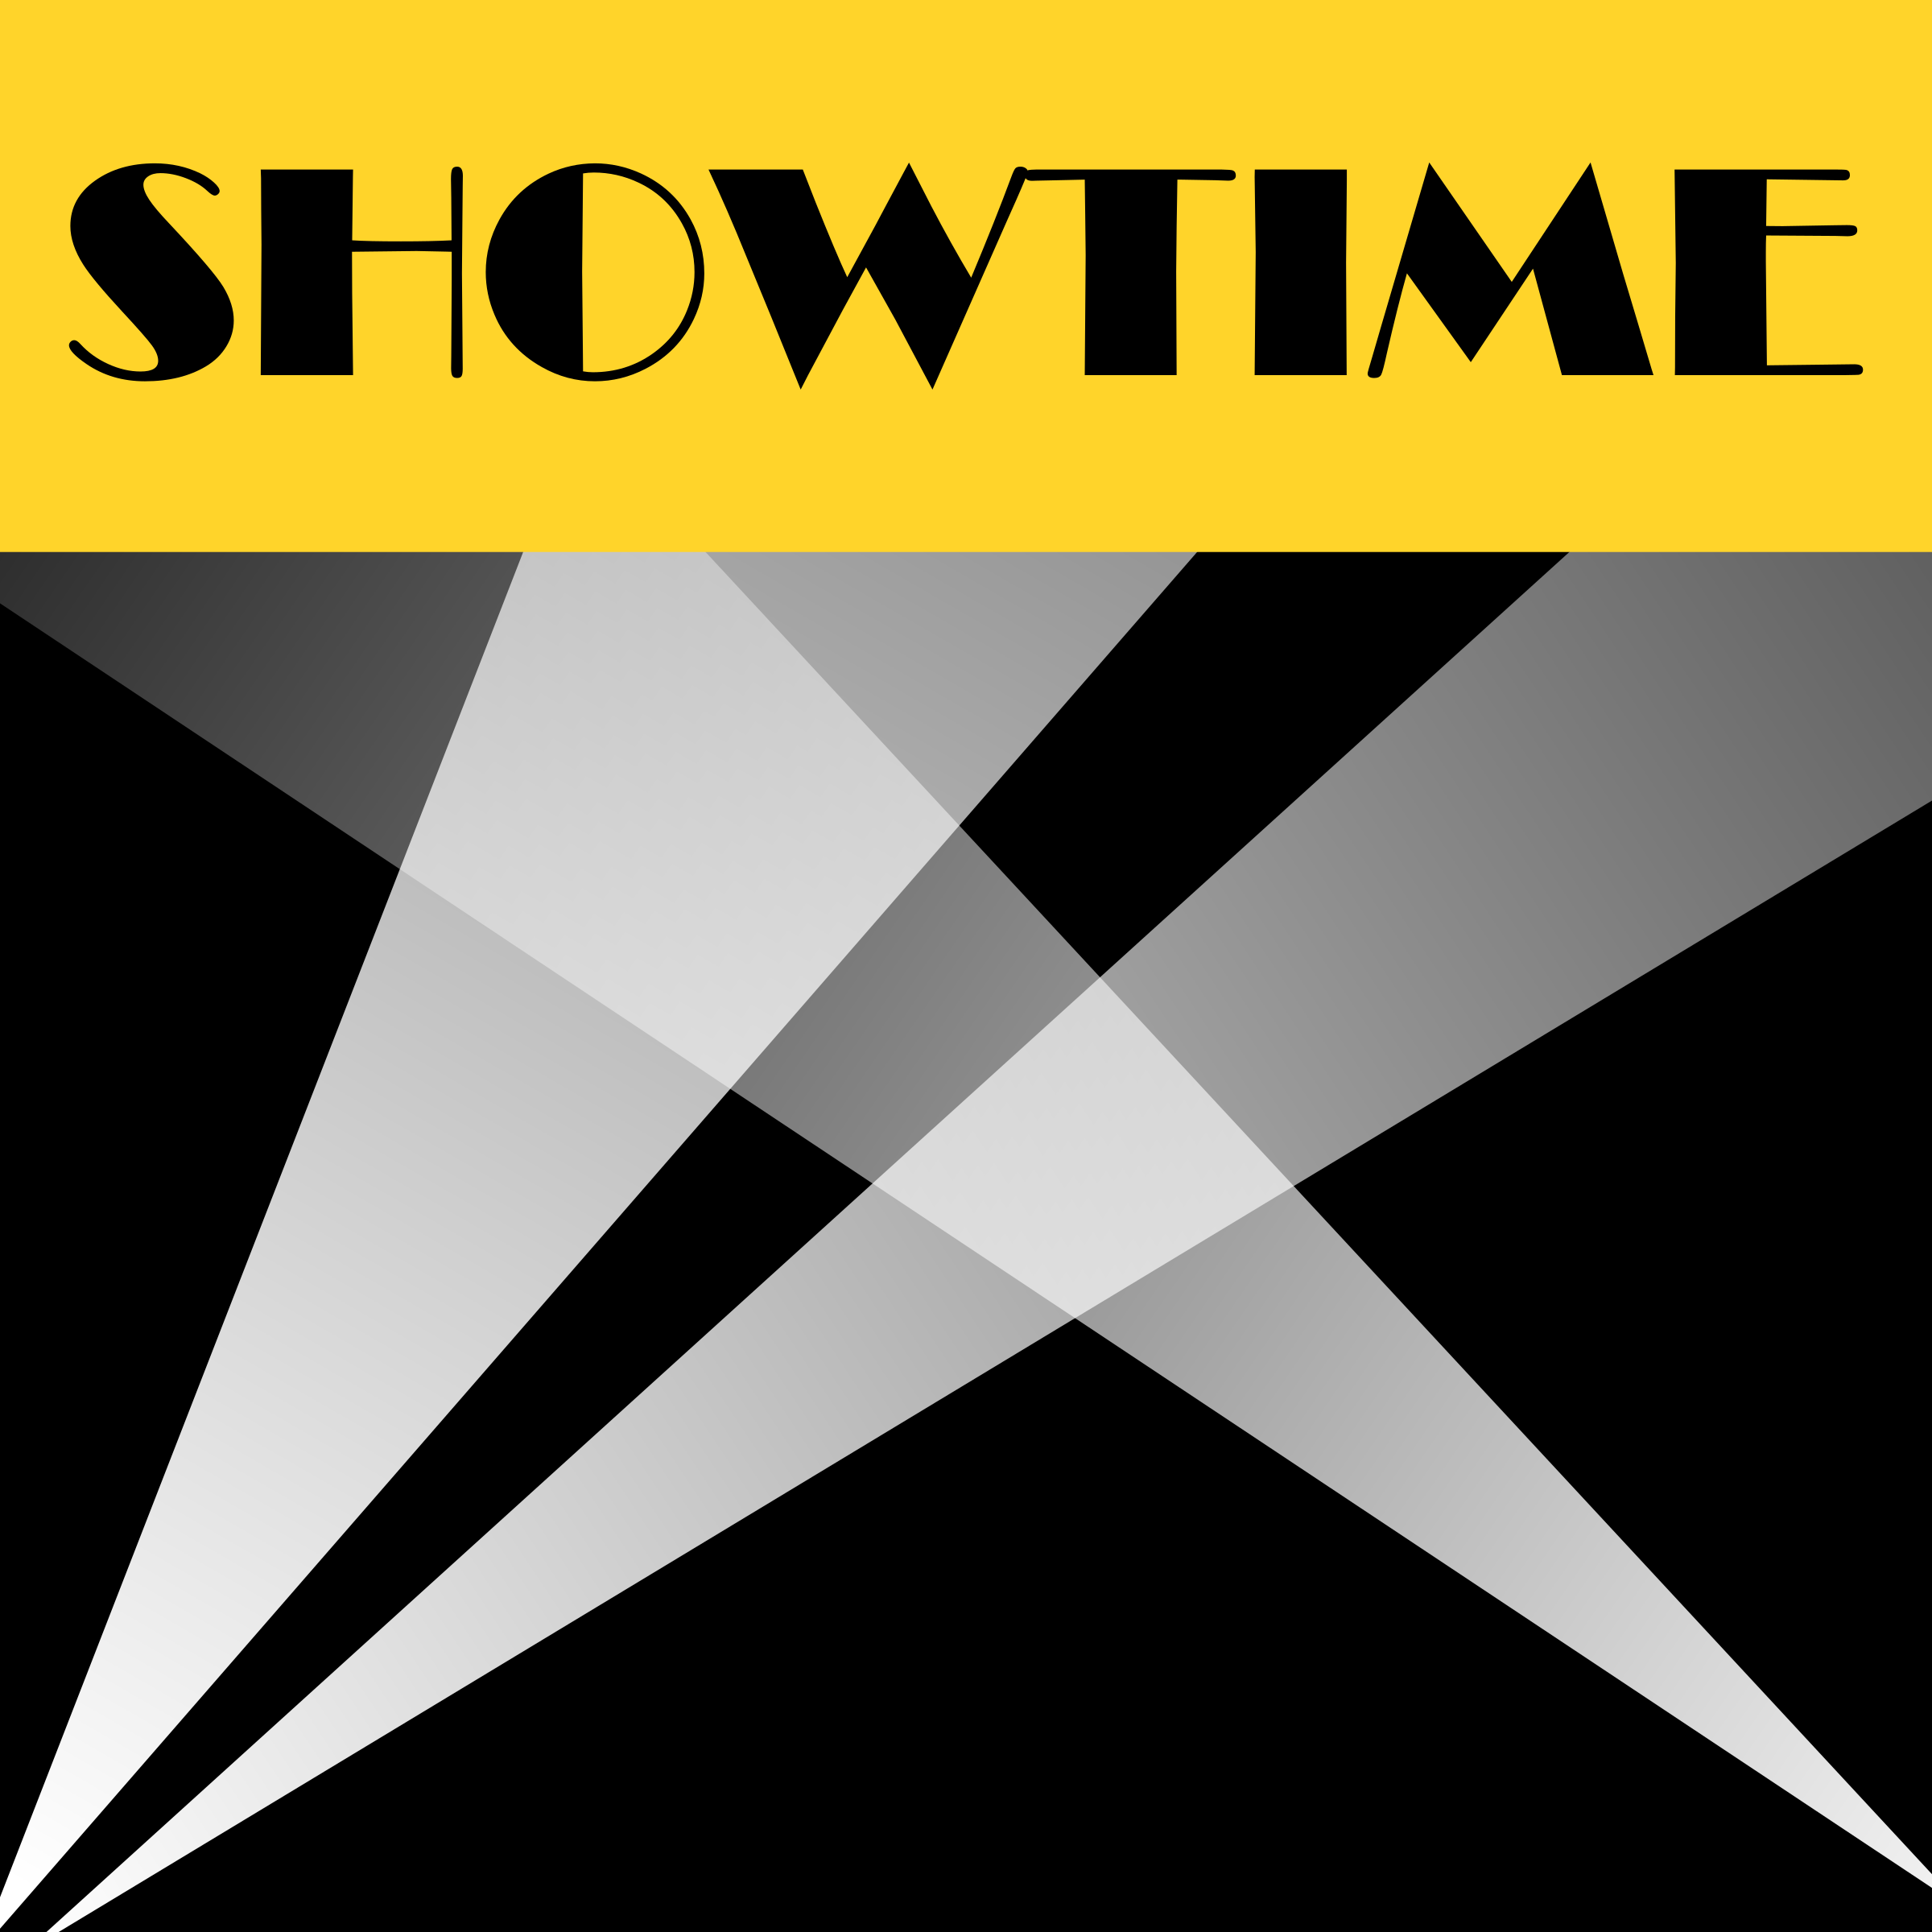 Showtime Icon by Dustwin